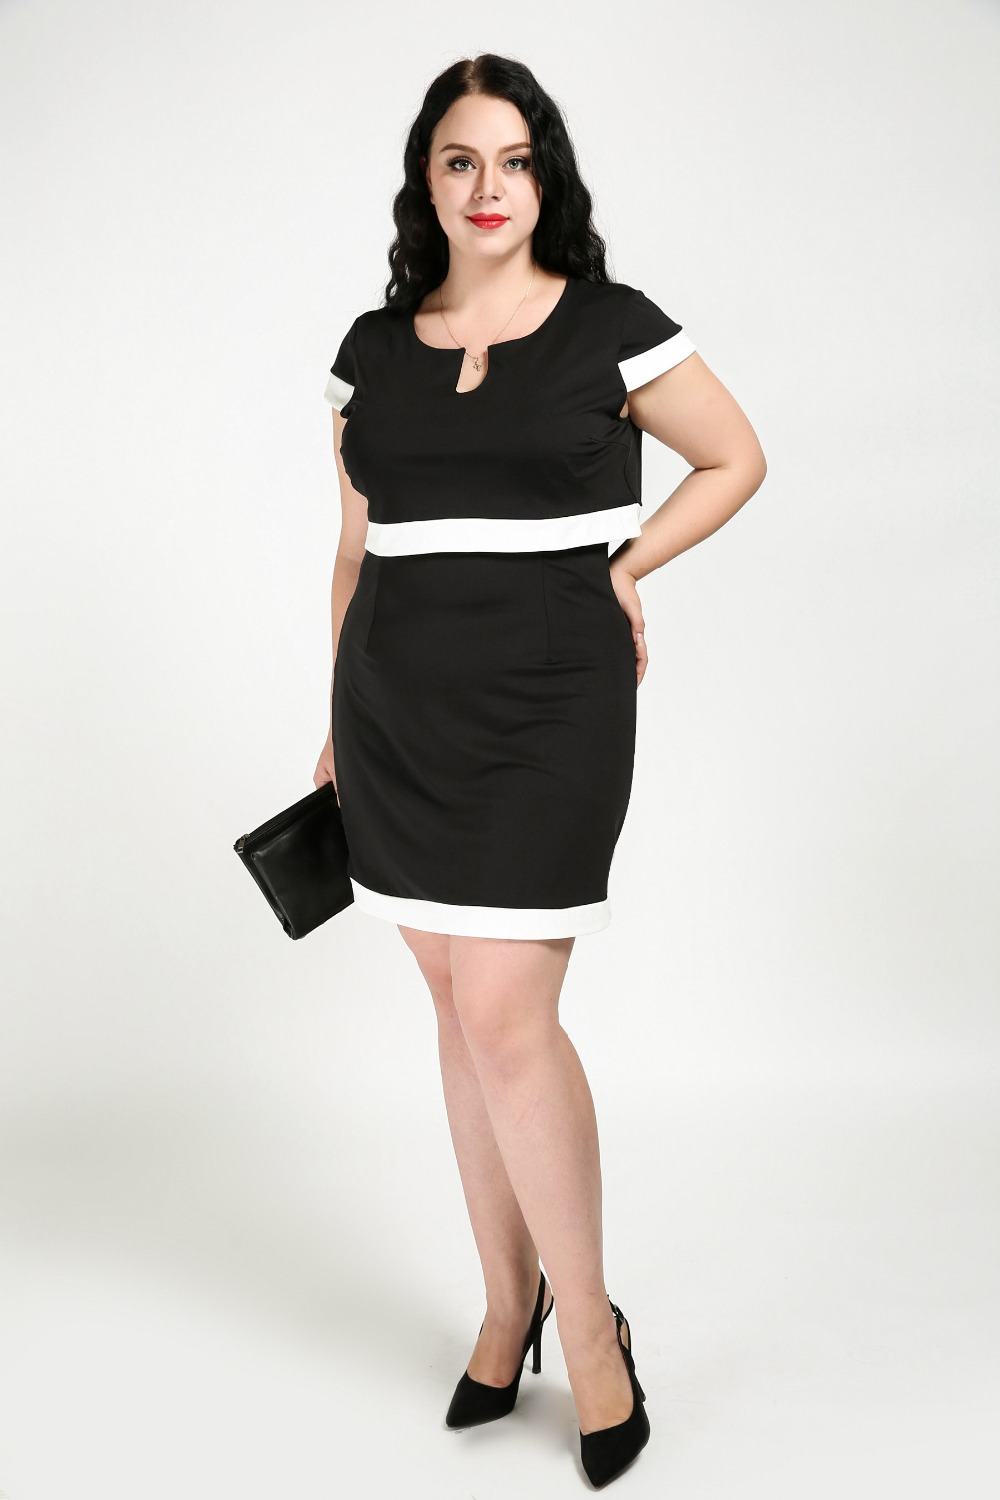 Womens Sexy V Neck Plus Size Cocktail Party Dress White And Black